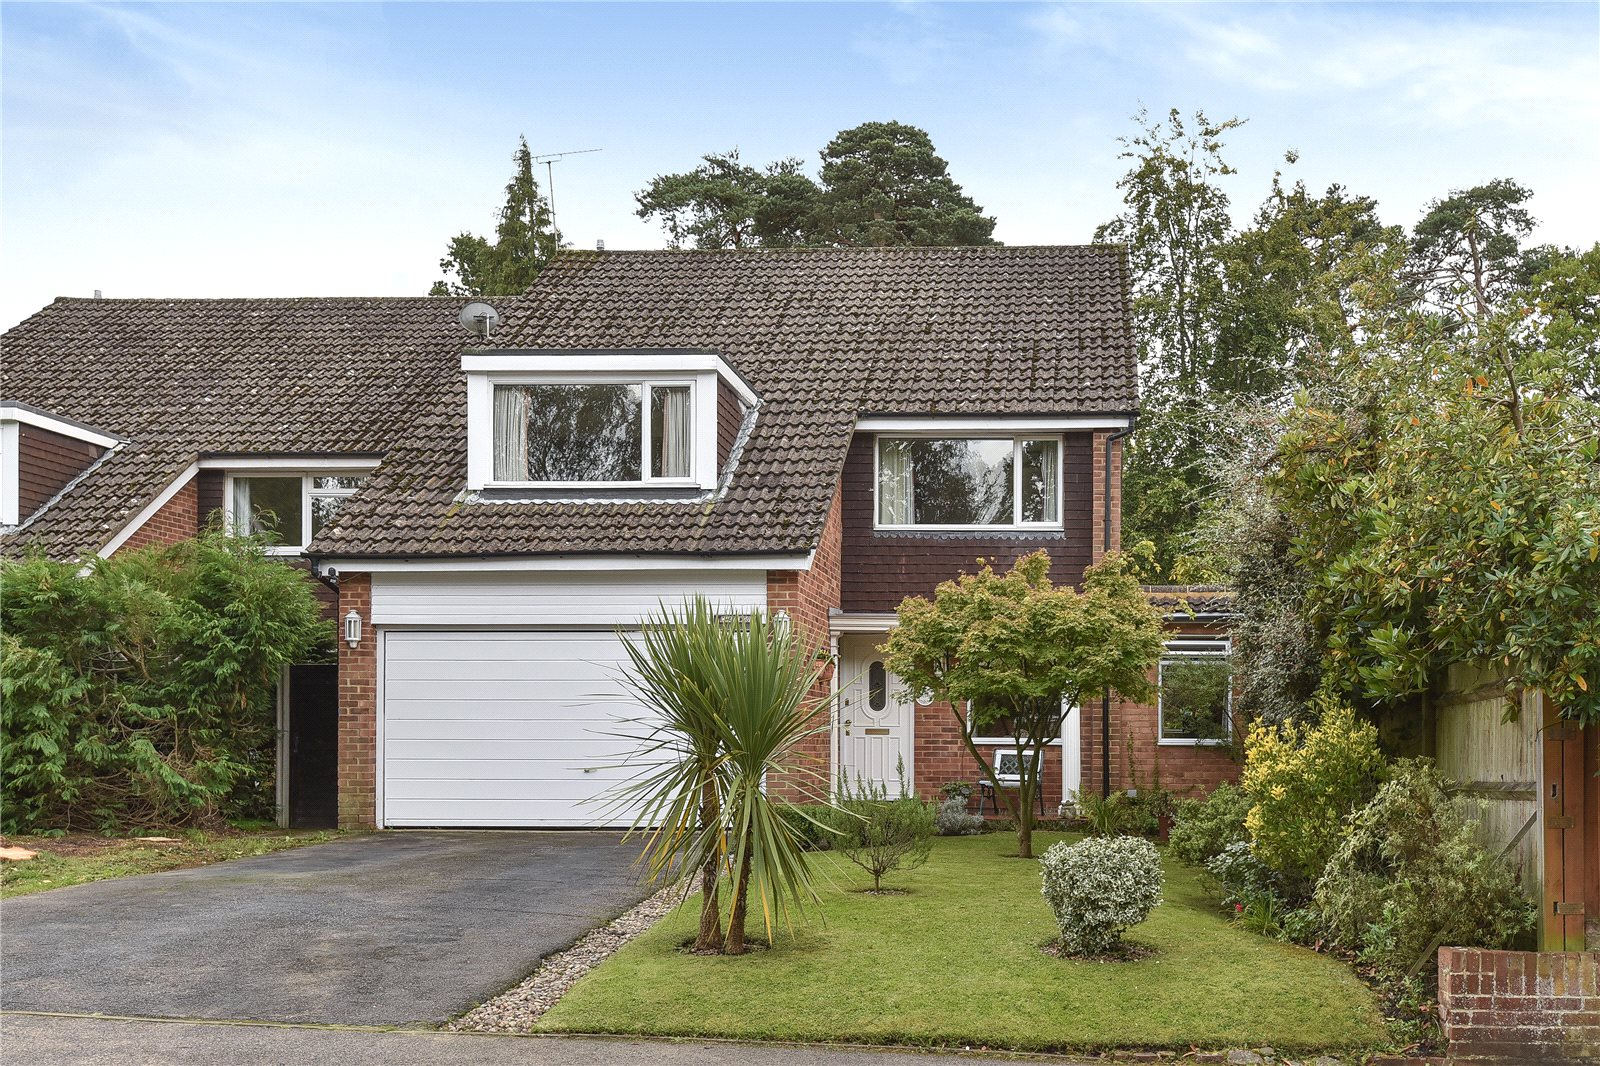 4 Bedrooms Detached House for sale in Llangar Grove, Crowthorne, Berkshire, RG45